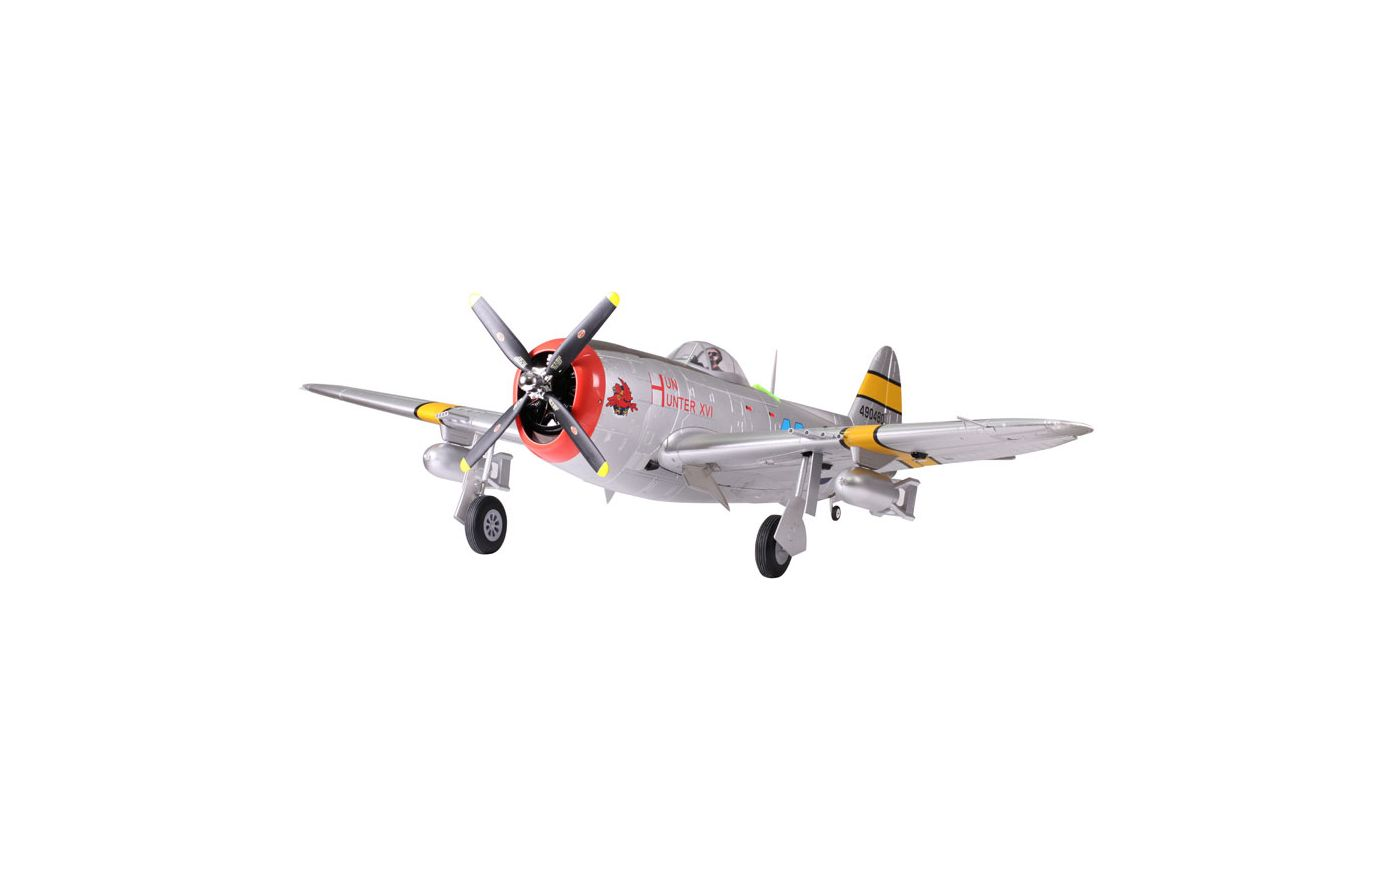 Image for P-47 Thunderbolt PNP, 1700mm: Silver from Force RC